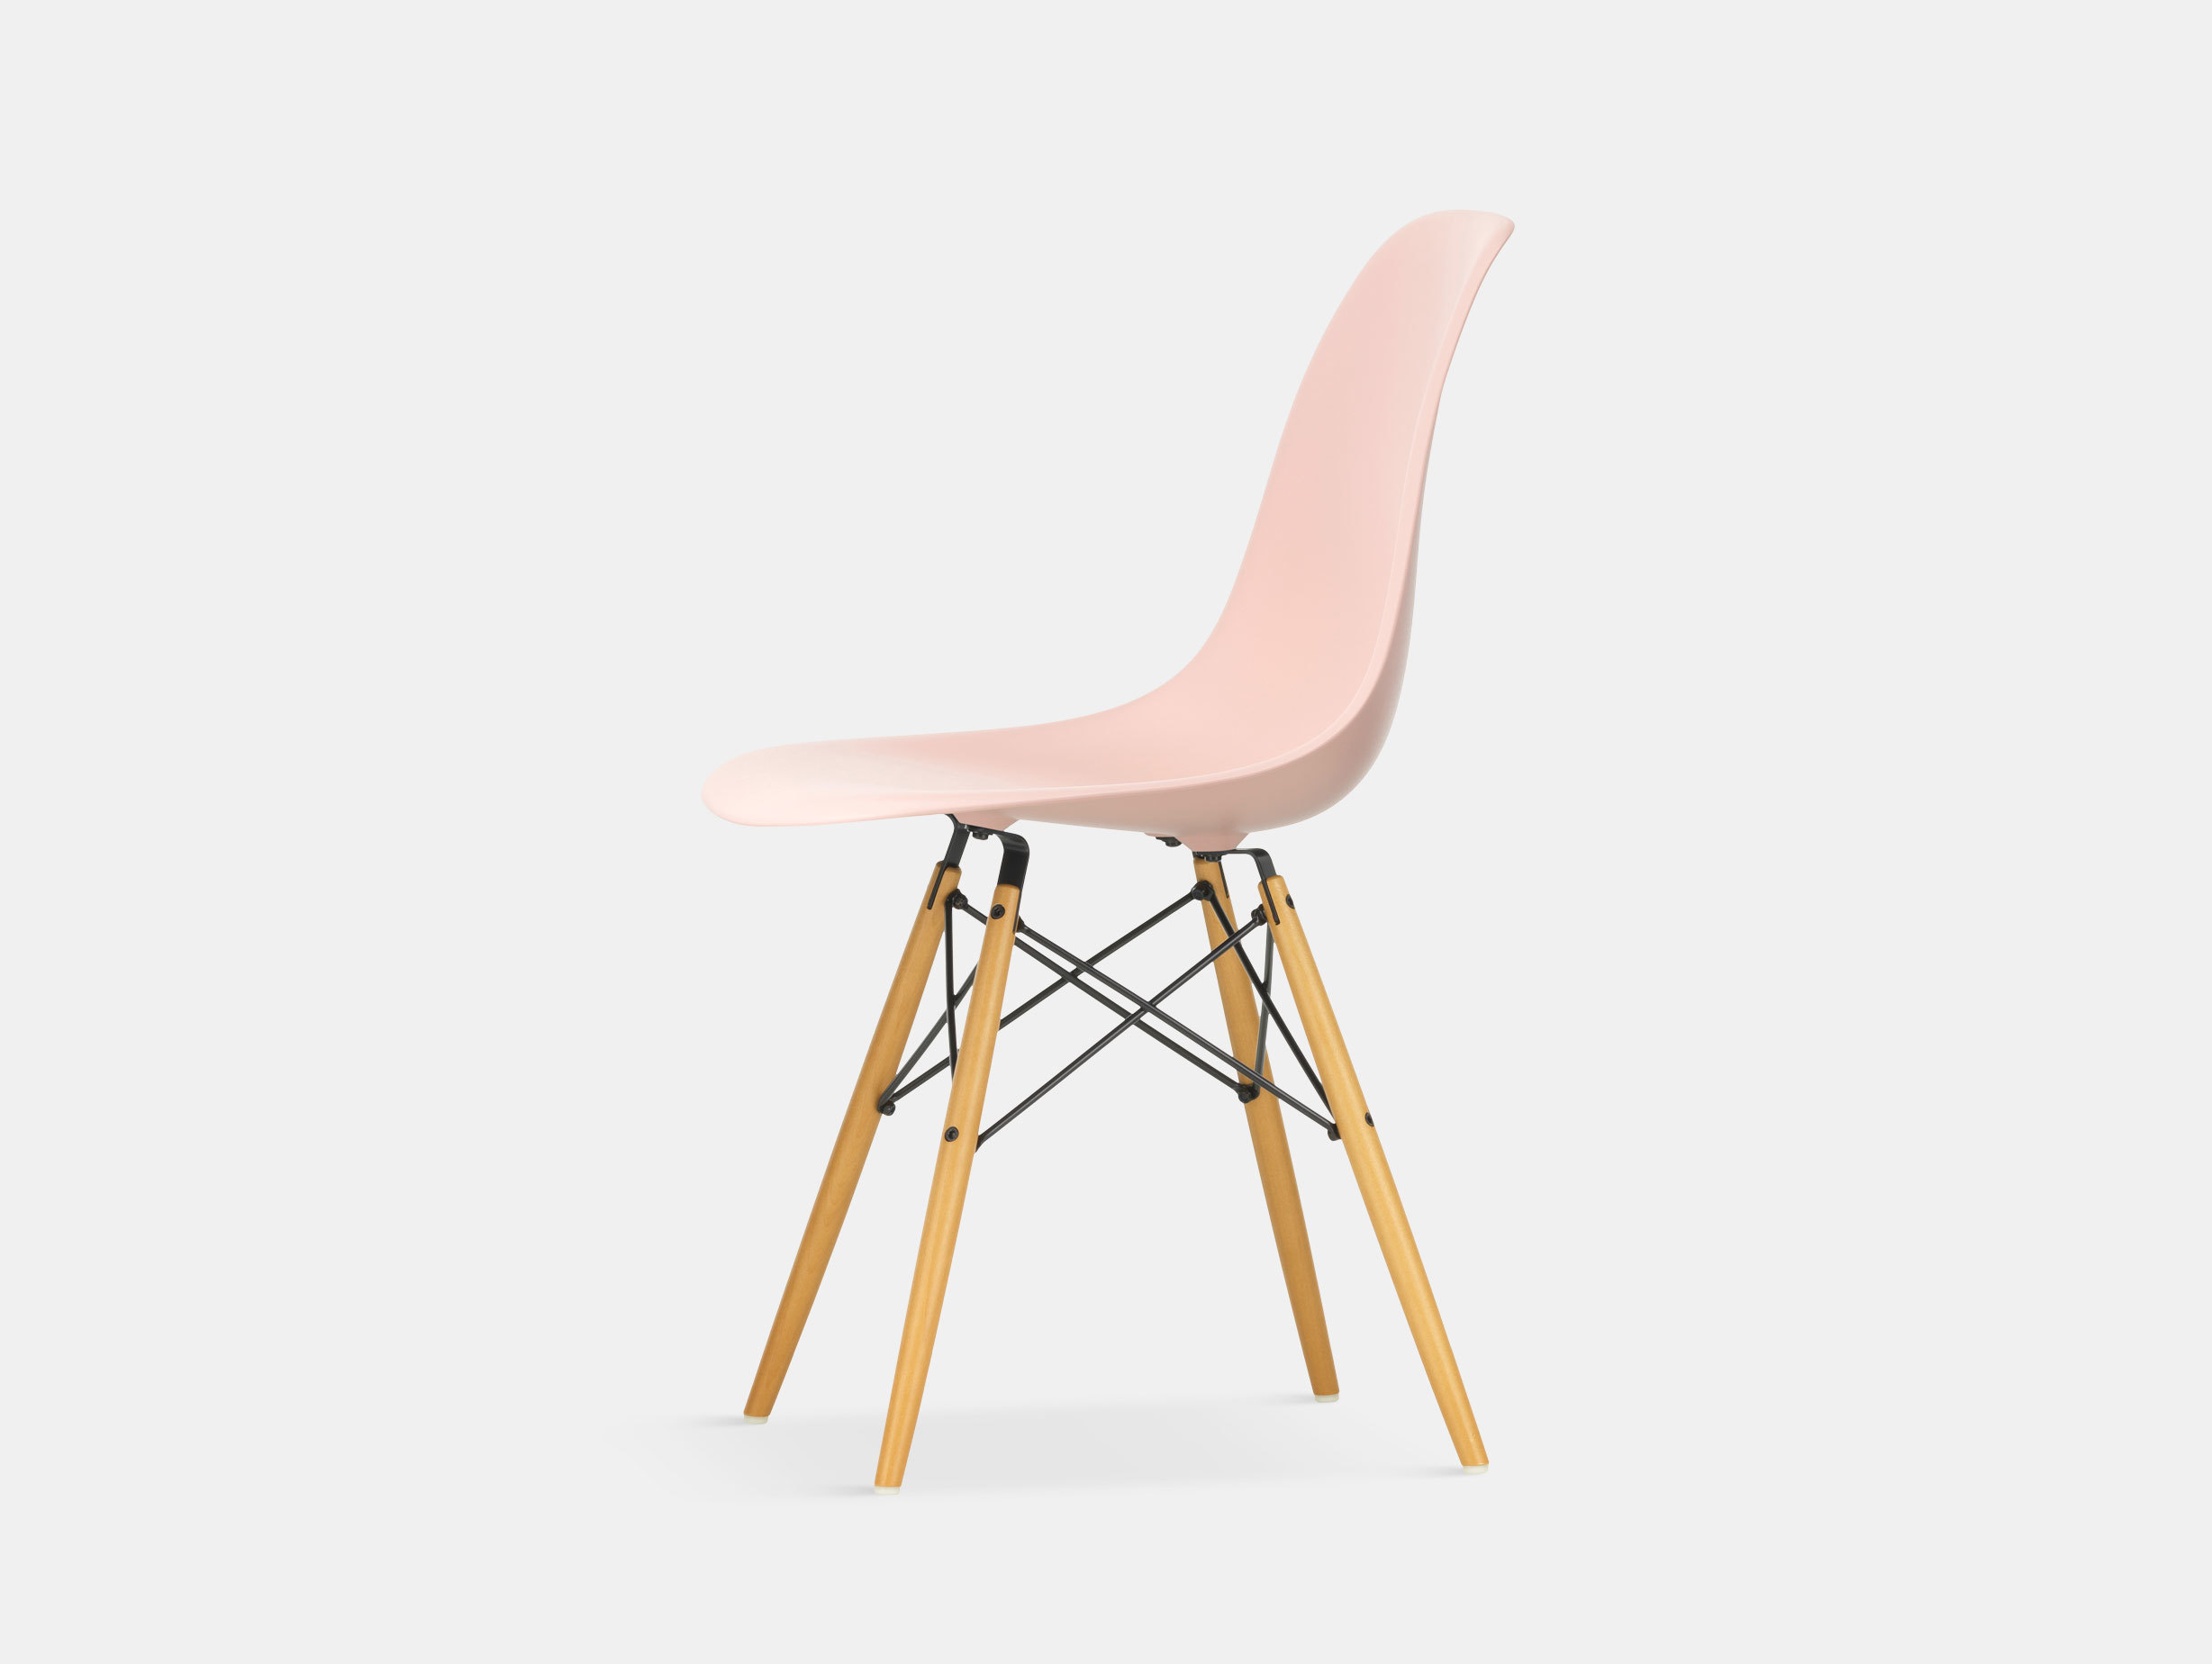 Vitra Eames DSW Plastic Side Chair pale rose golden maple legs